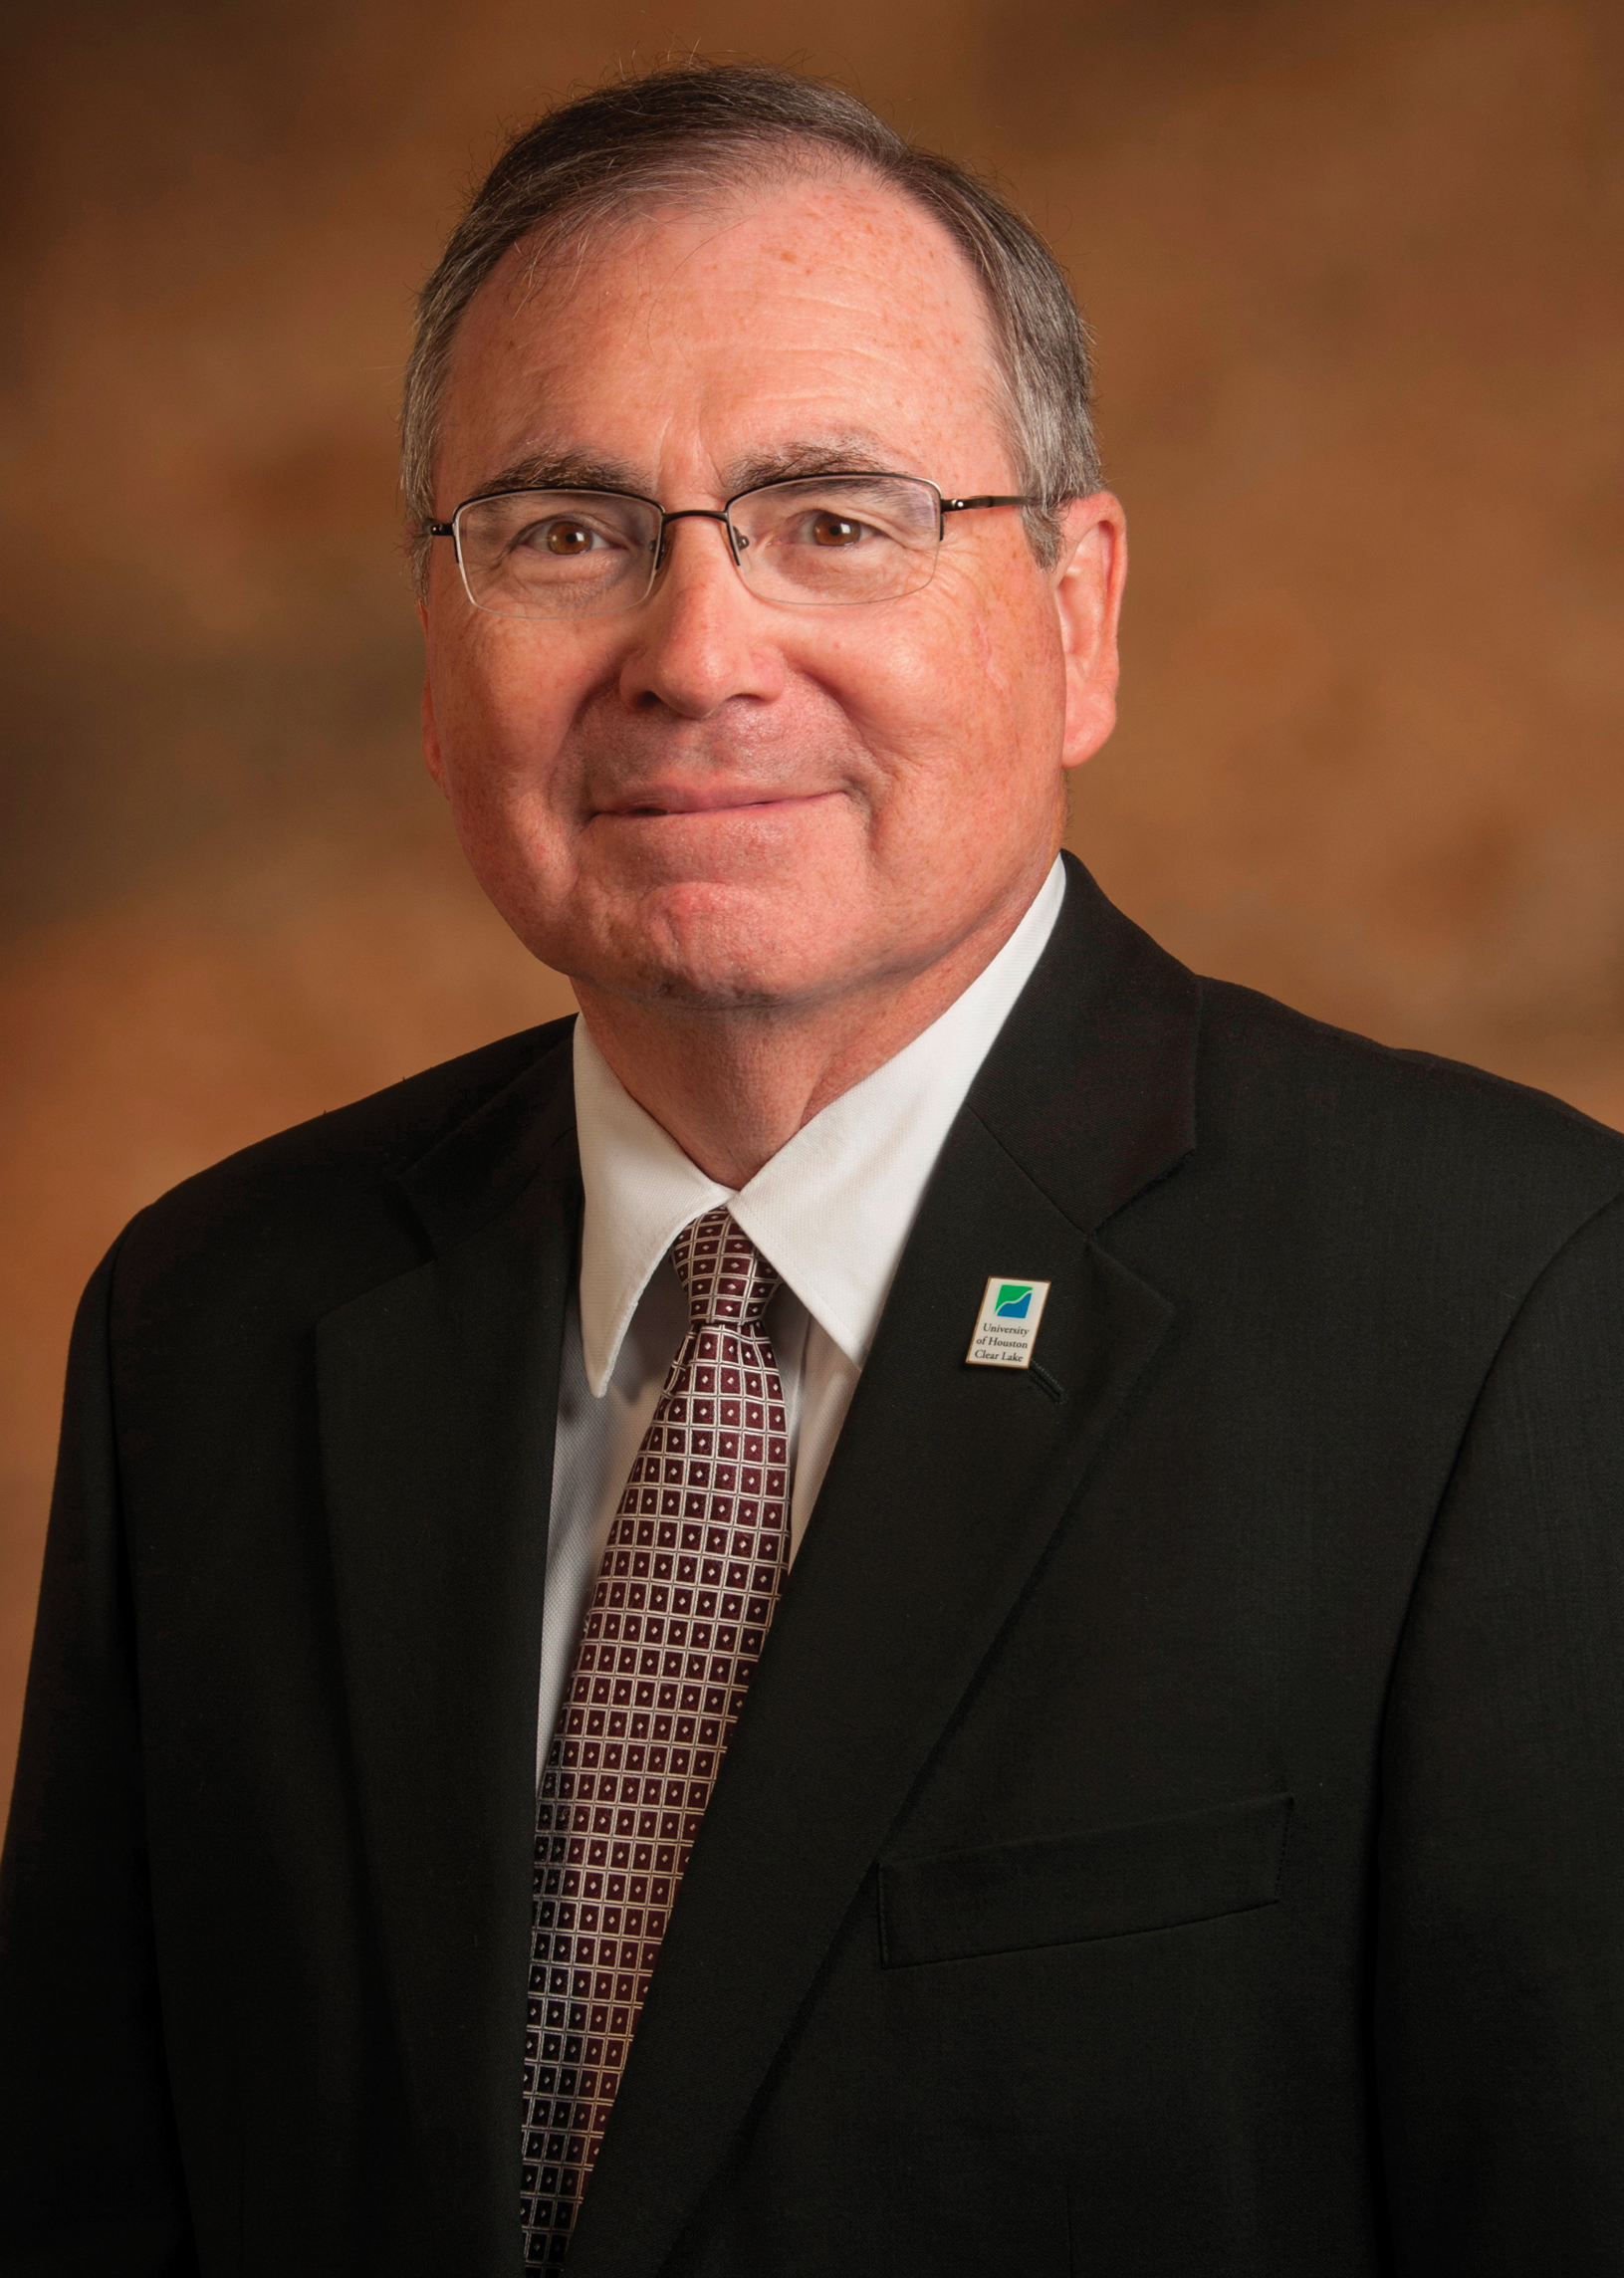 Dr. Staples for UHCL